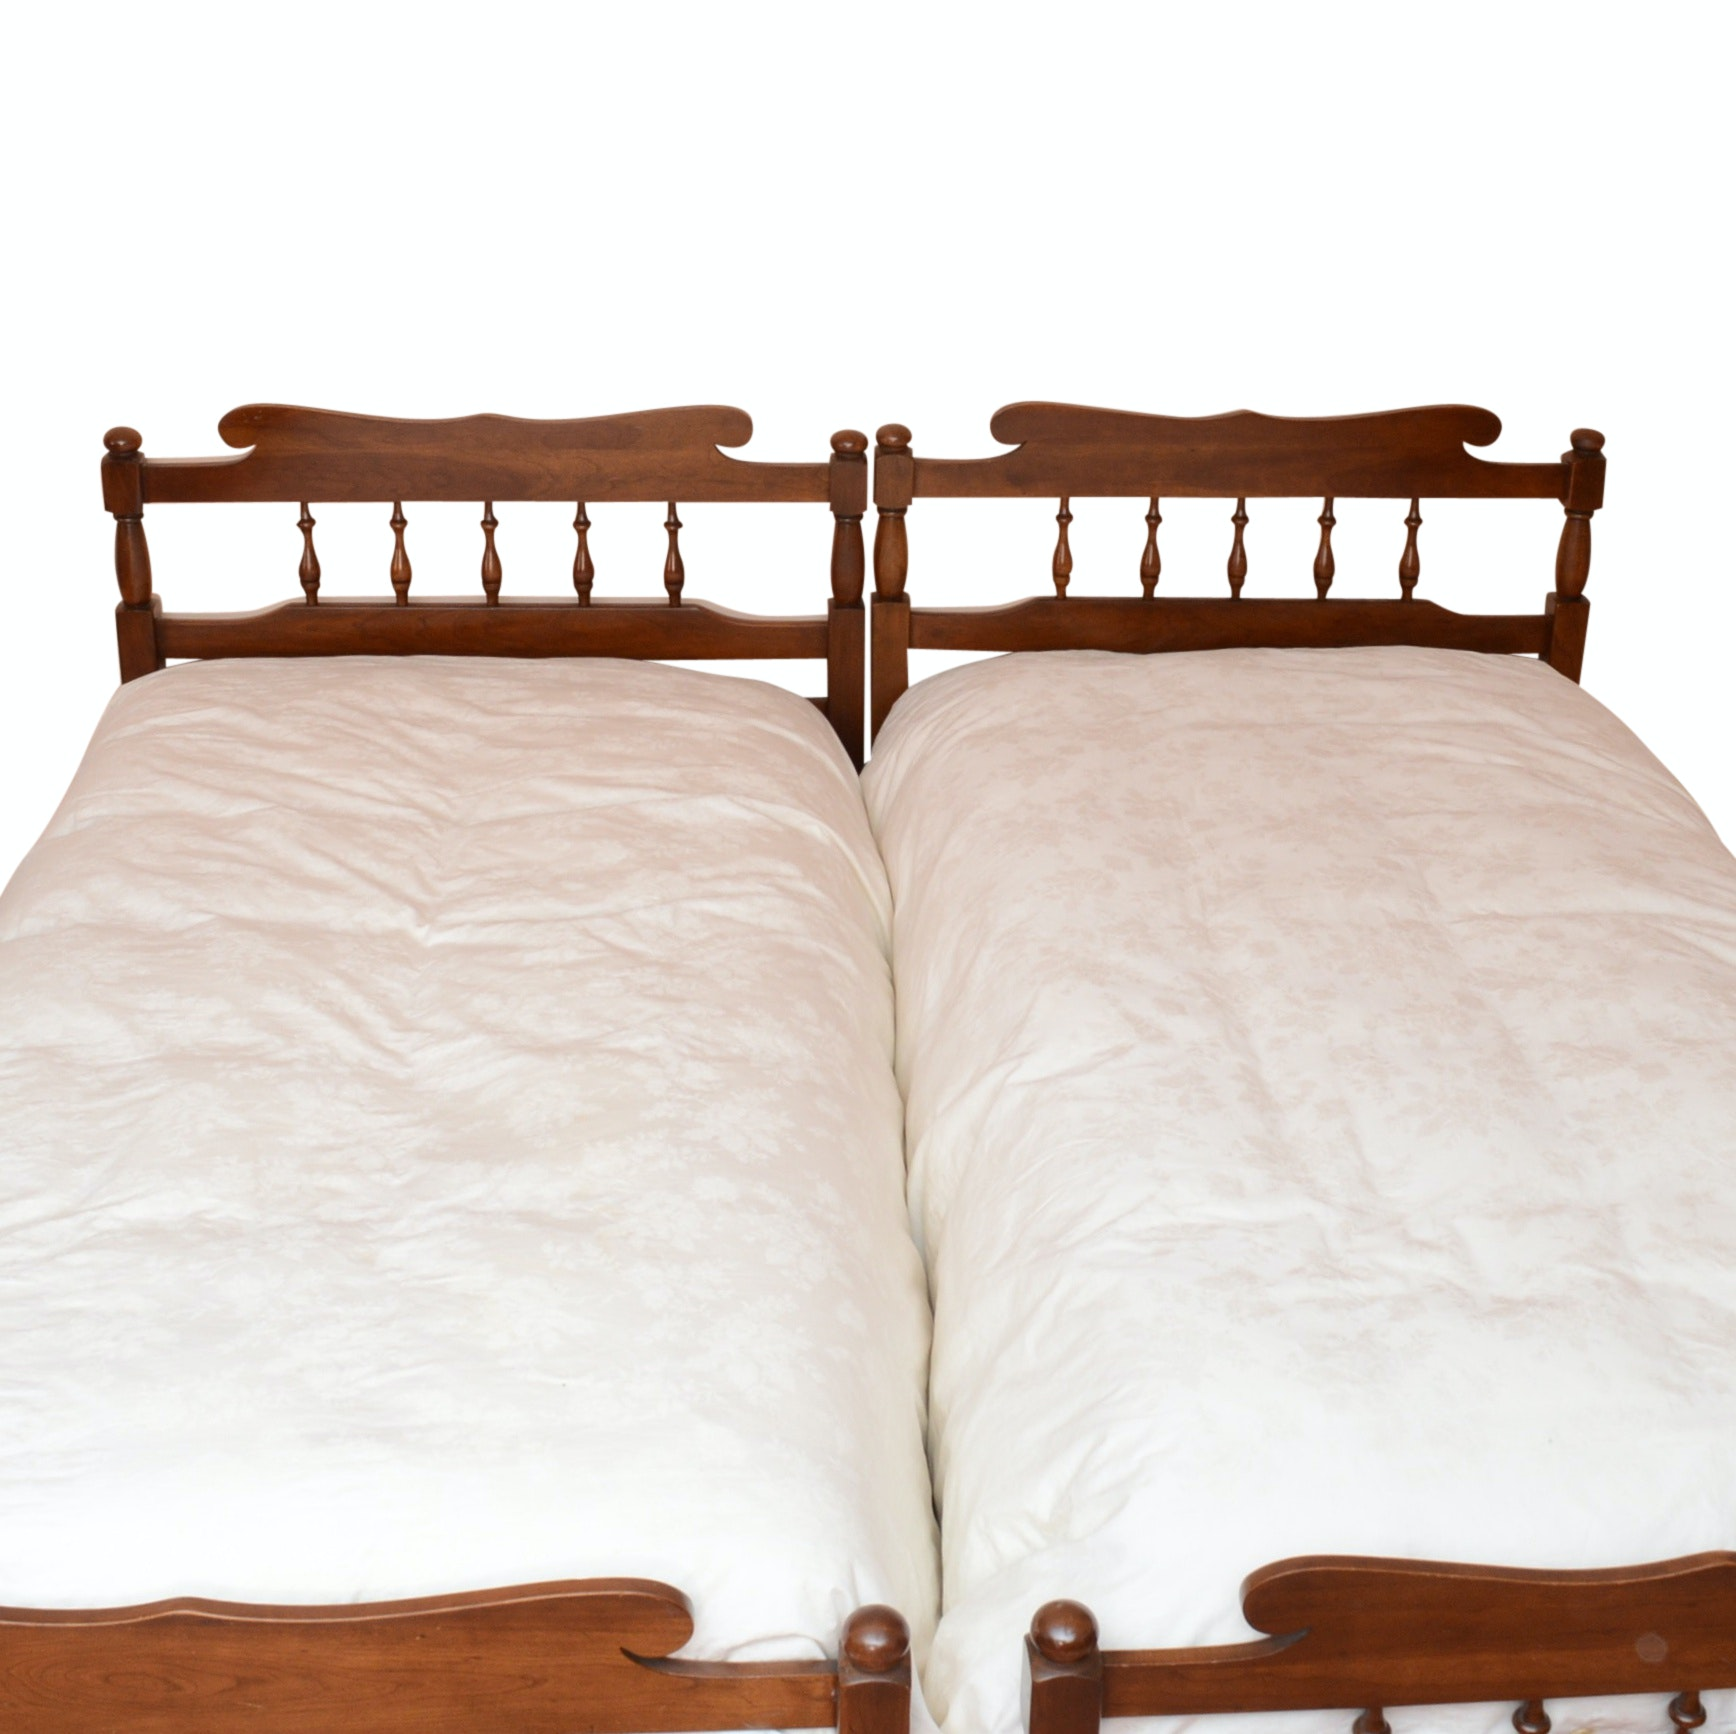 Pair of Solid Cherry Wood Twin Bed Frames